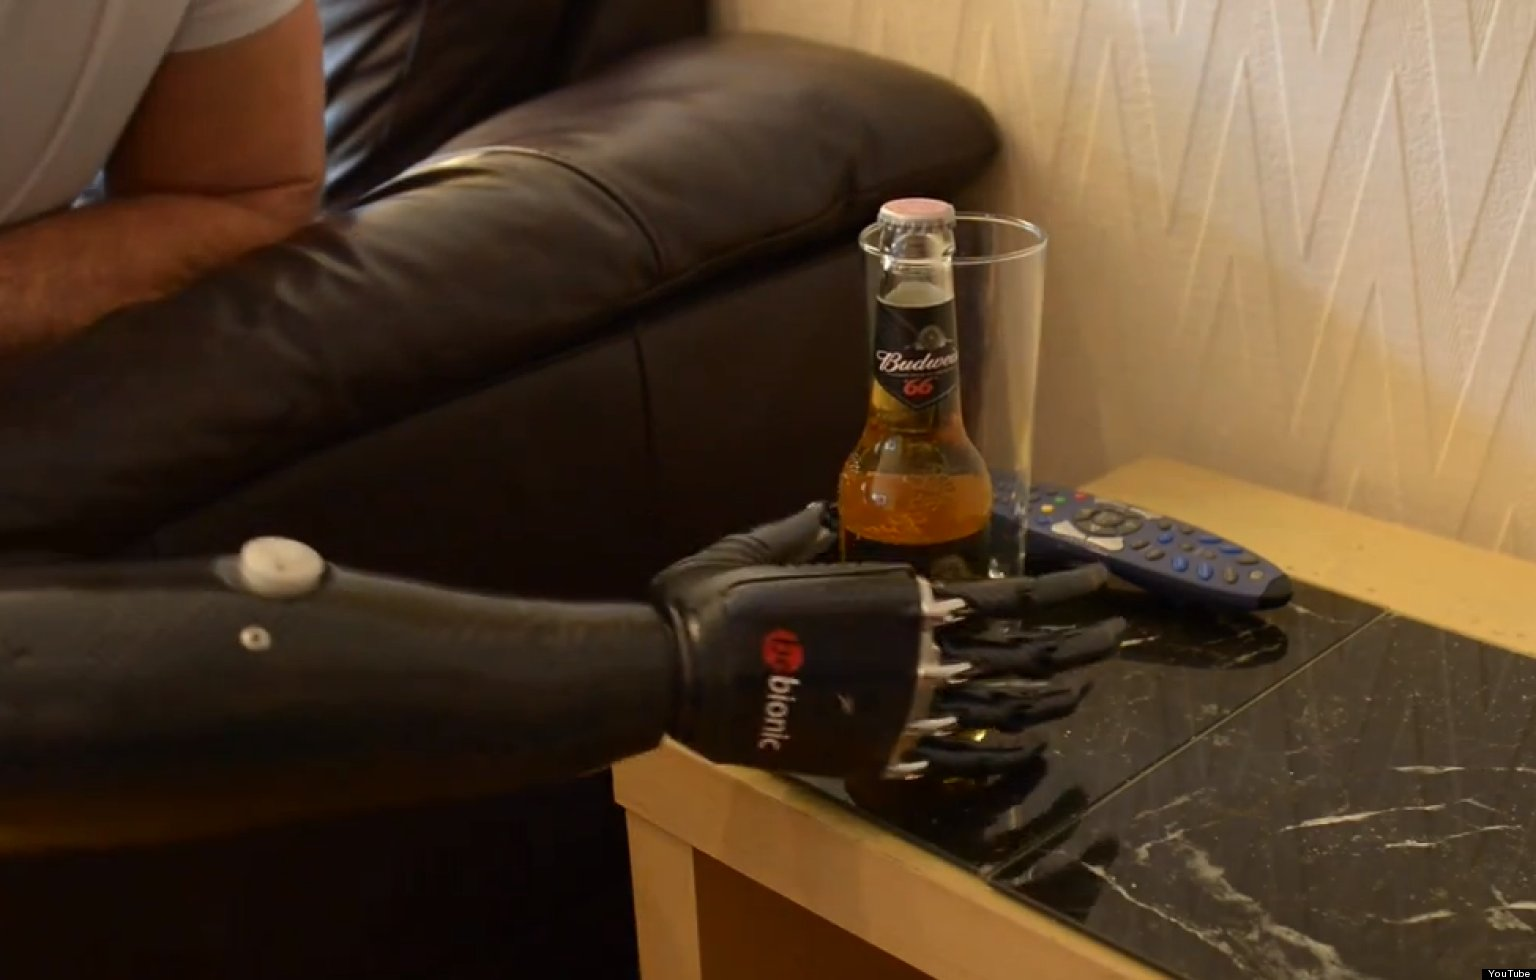 worlds most amazing prosthetic arm huffpost